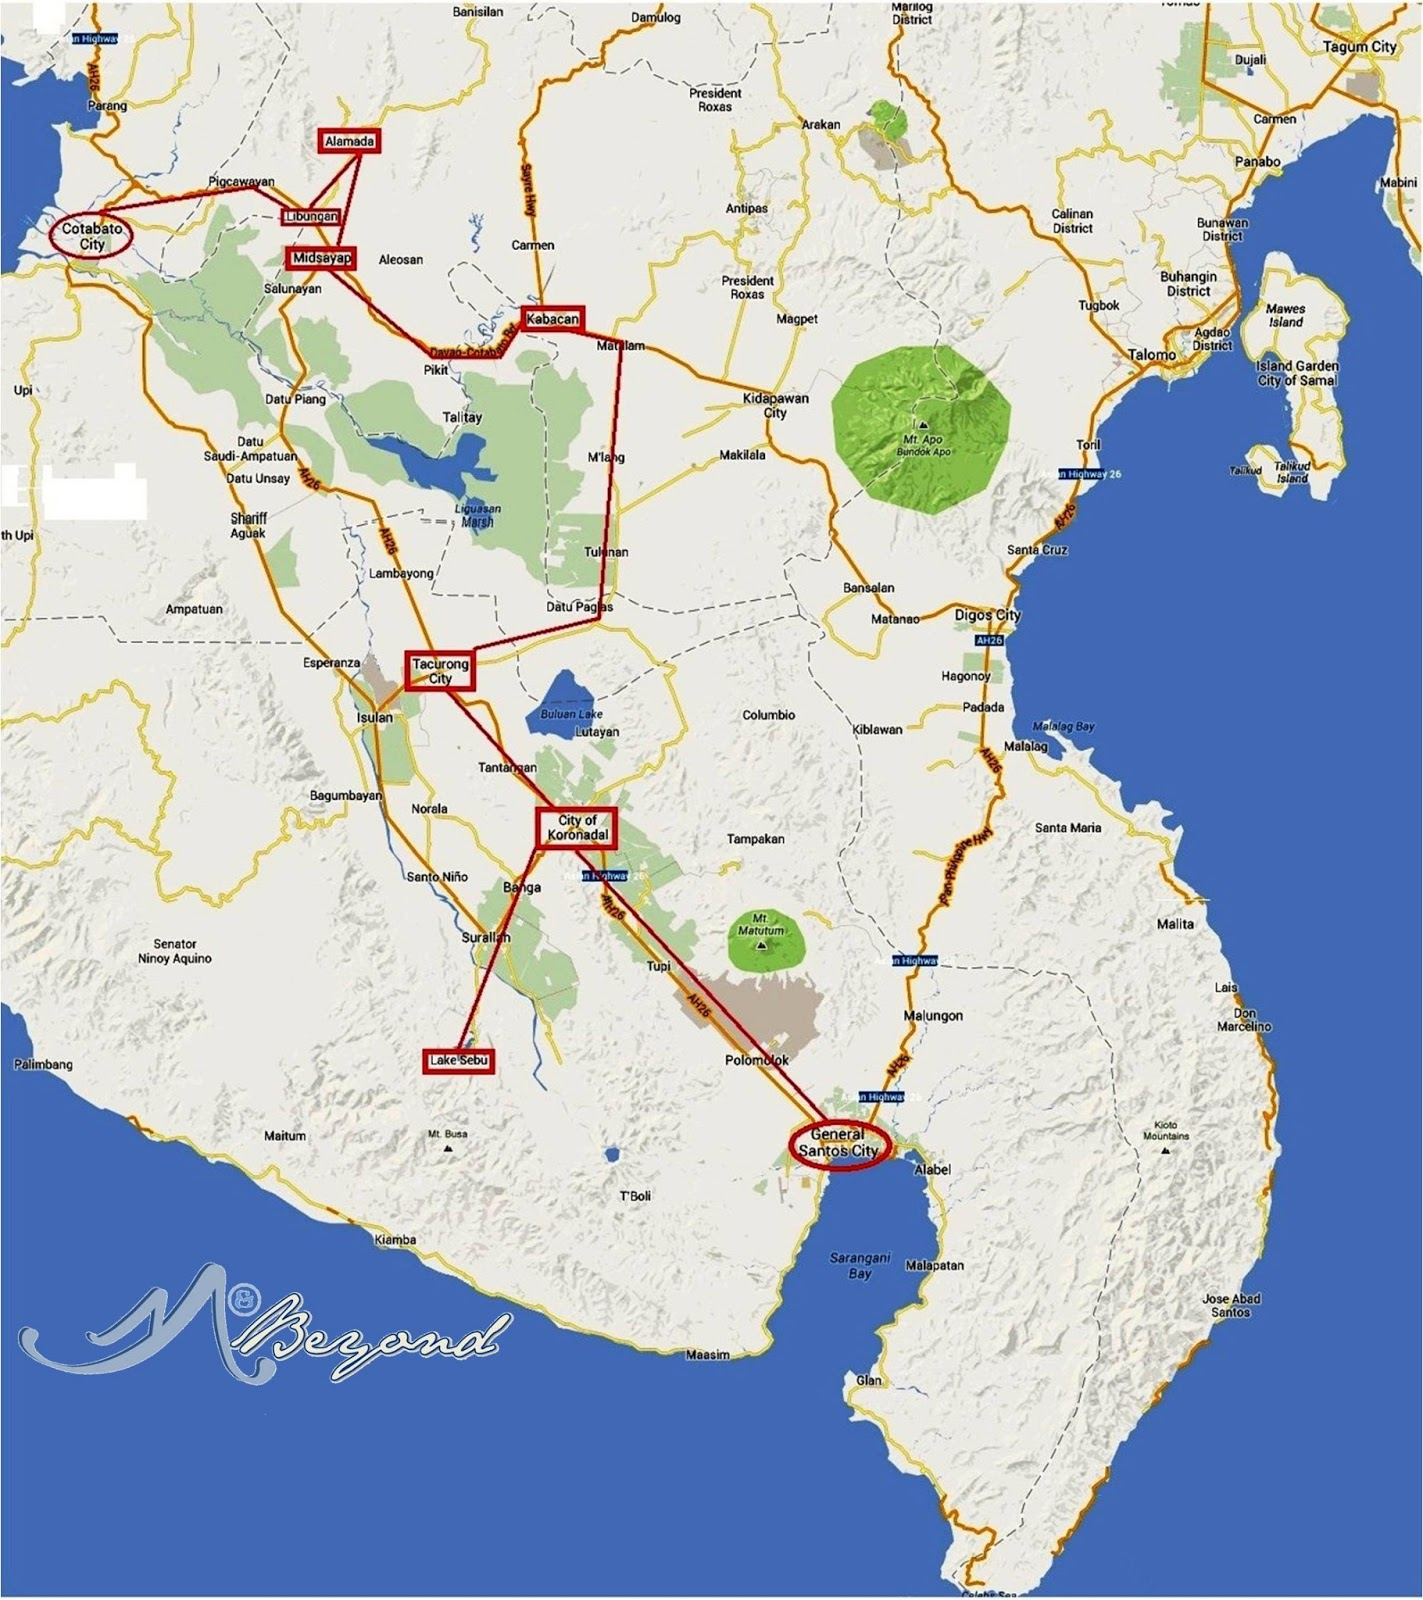 socsargen map, region 12 map, soccsksargen map, map of socsarge, gensan to lake sebu, general santos to koronadal, gensan to koronadal, gensan to marbel, how to go to lake sebu, koronadal to lake sebu